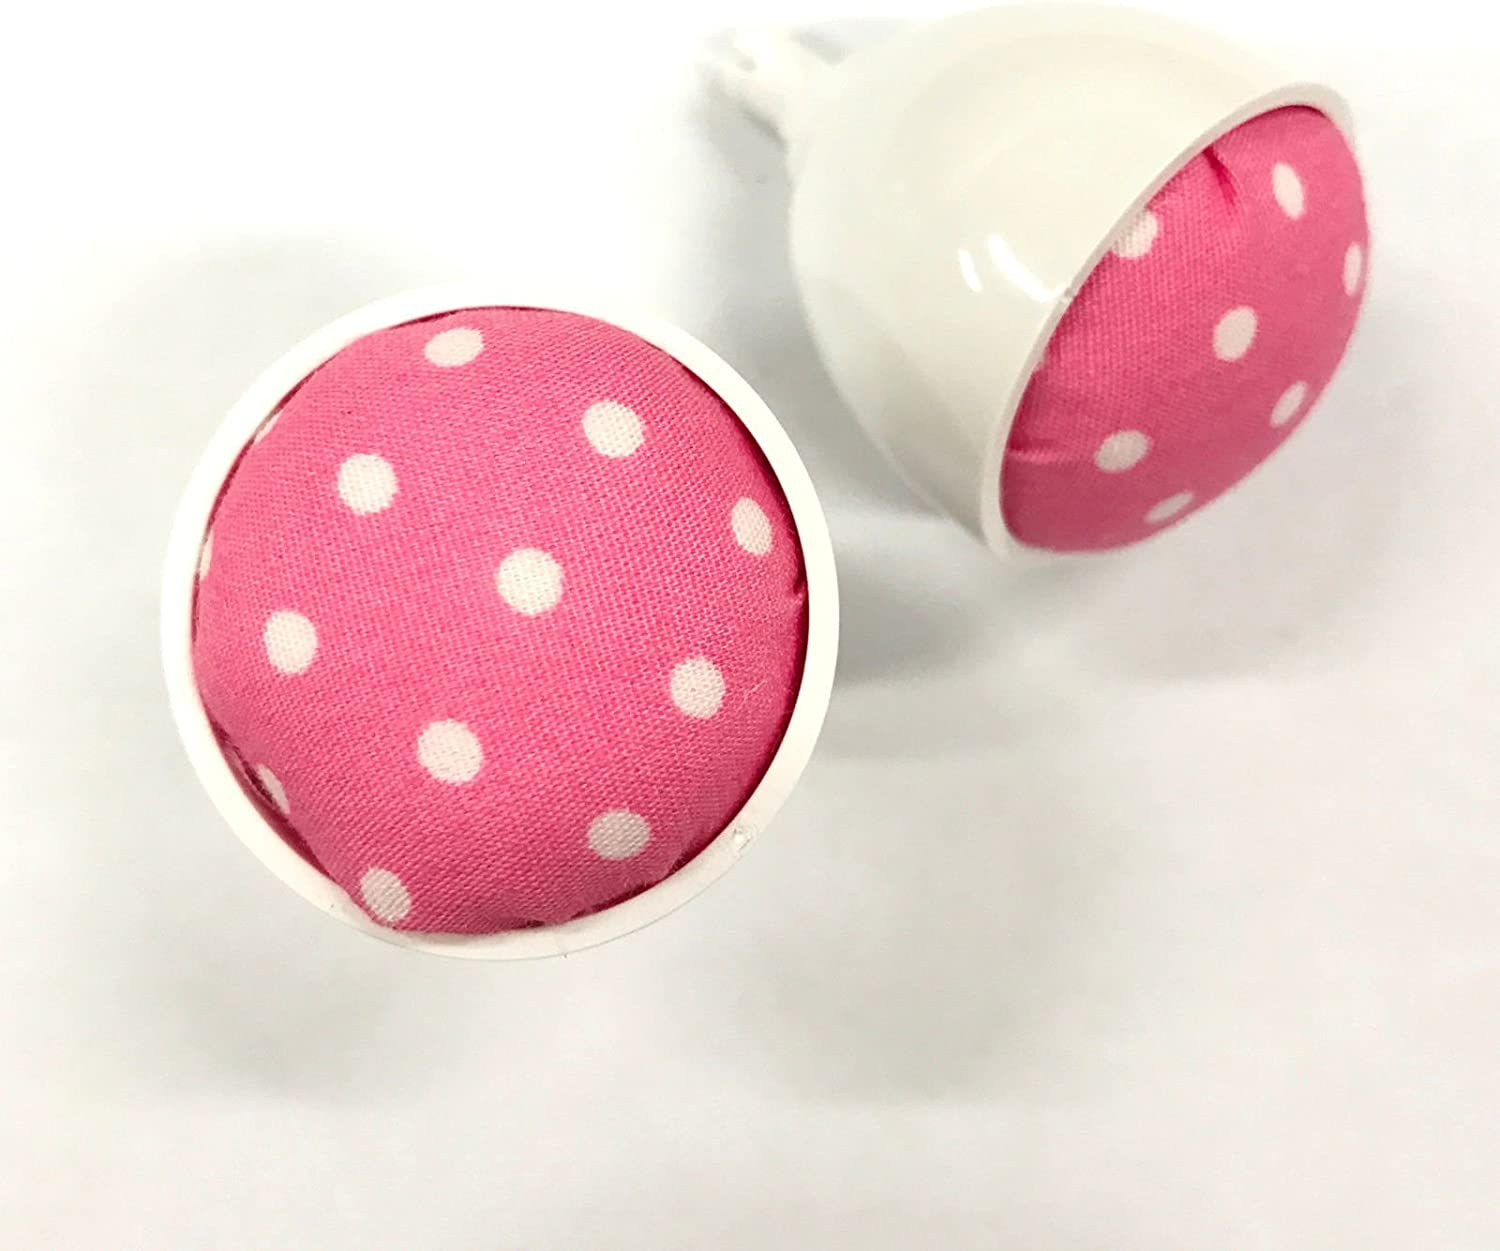 Attachable Pin Cushion (Pink) For Janome Sewing Machines #808818007